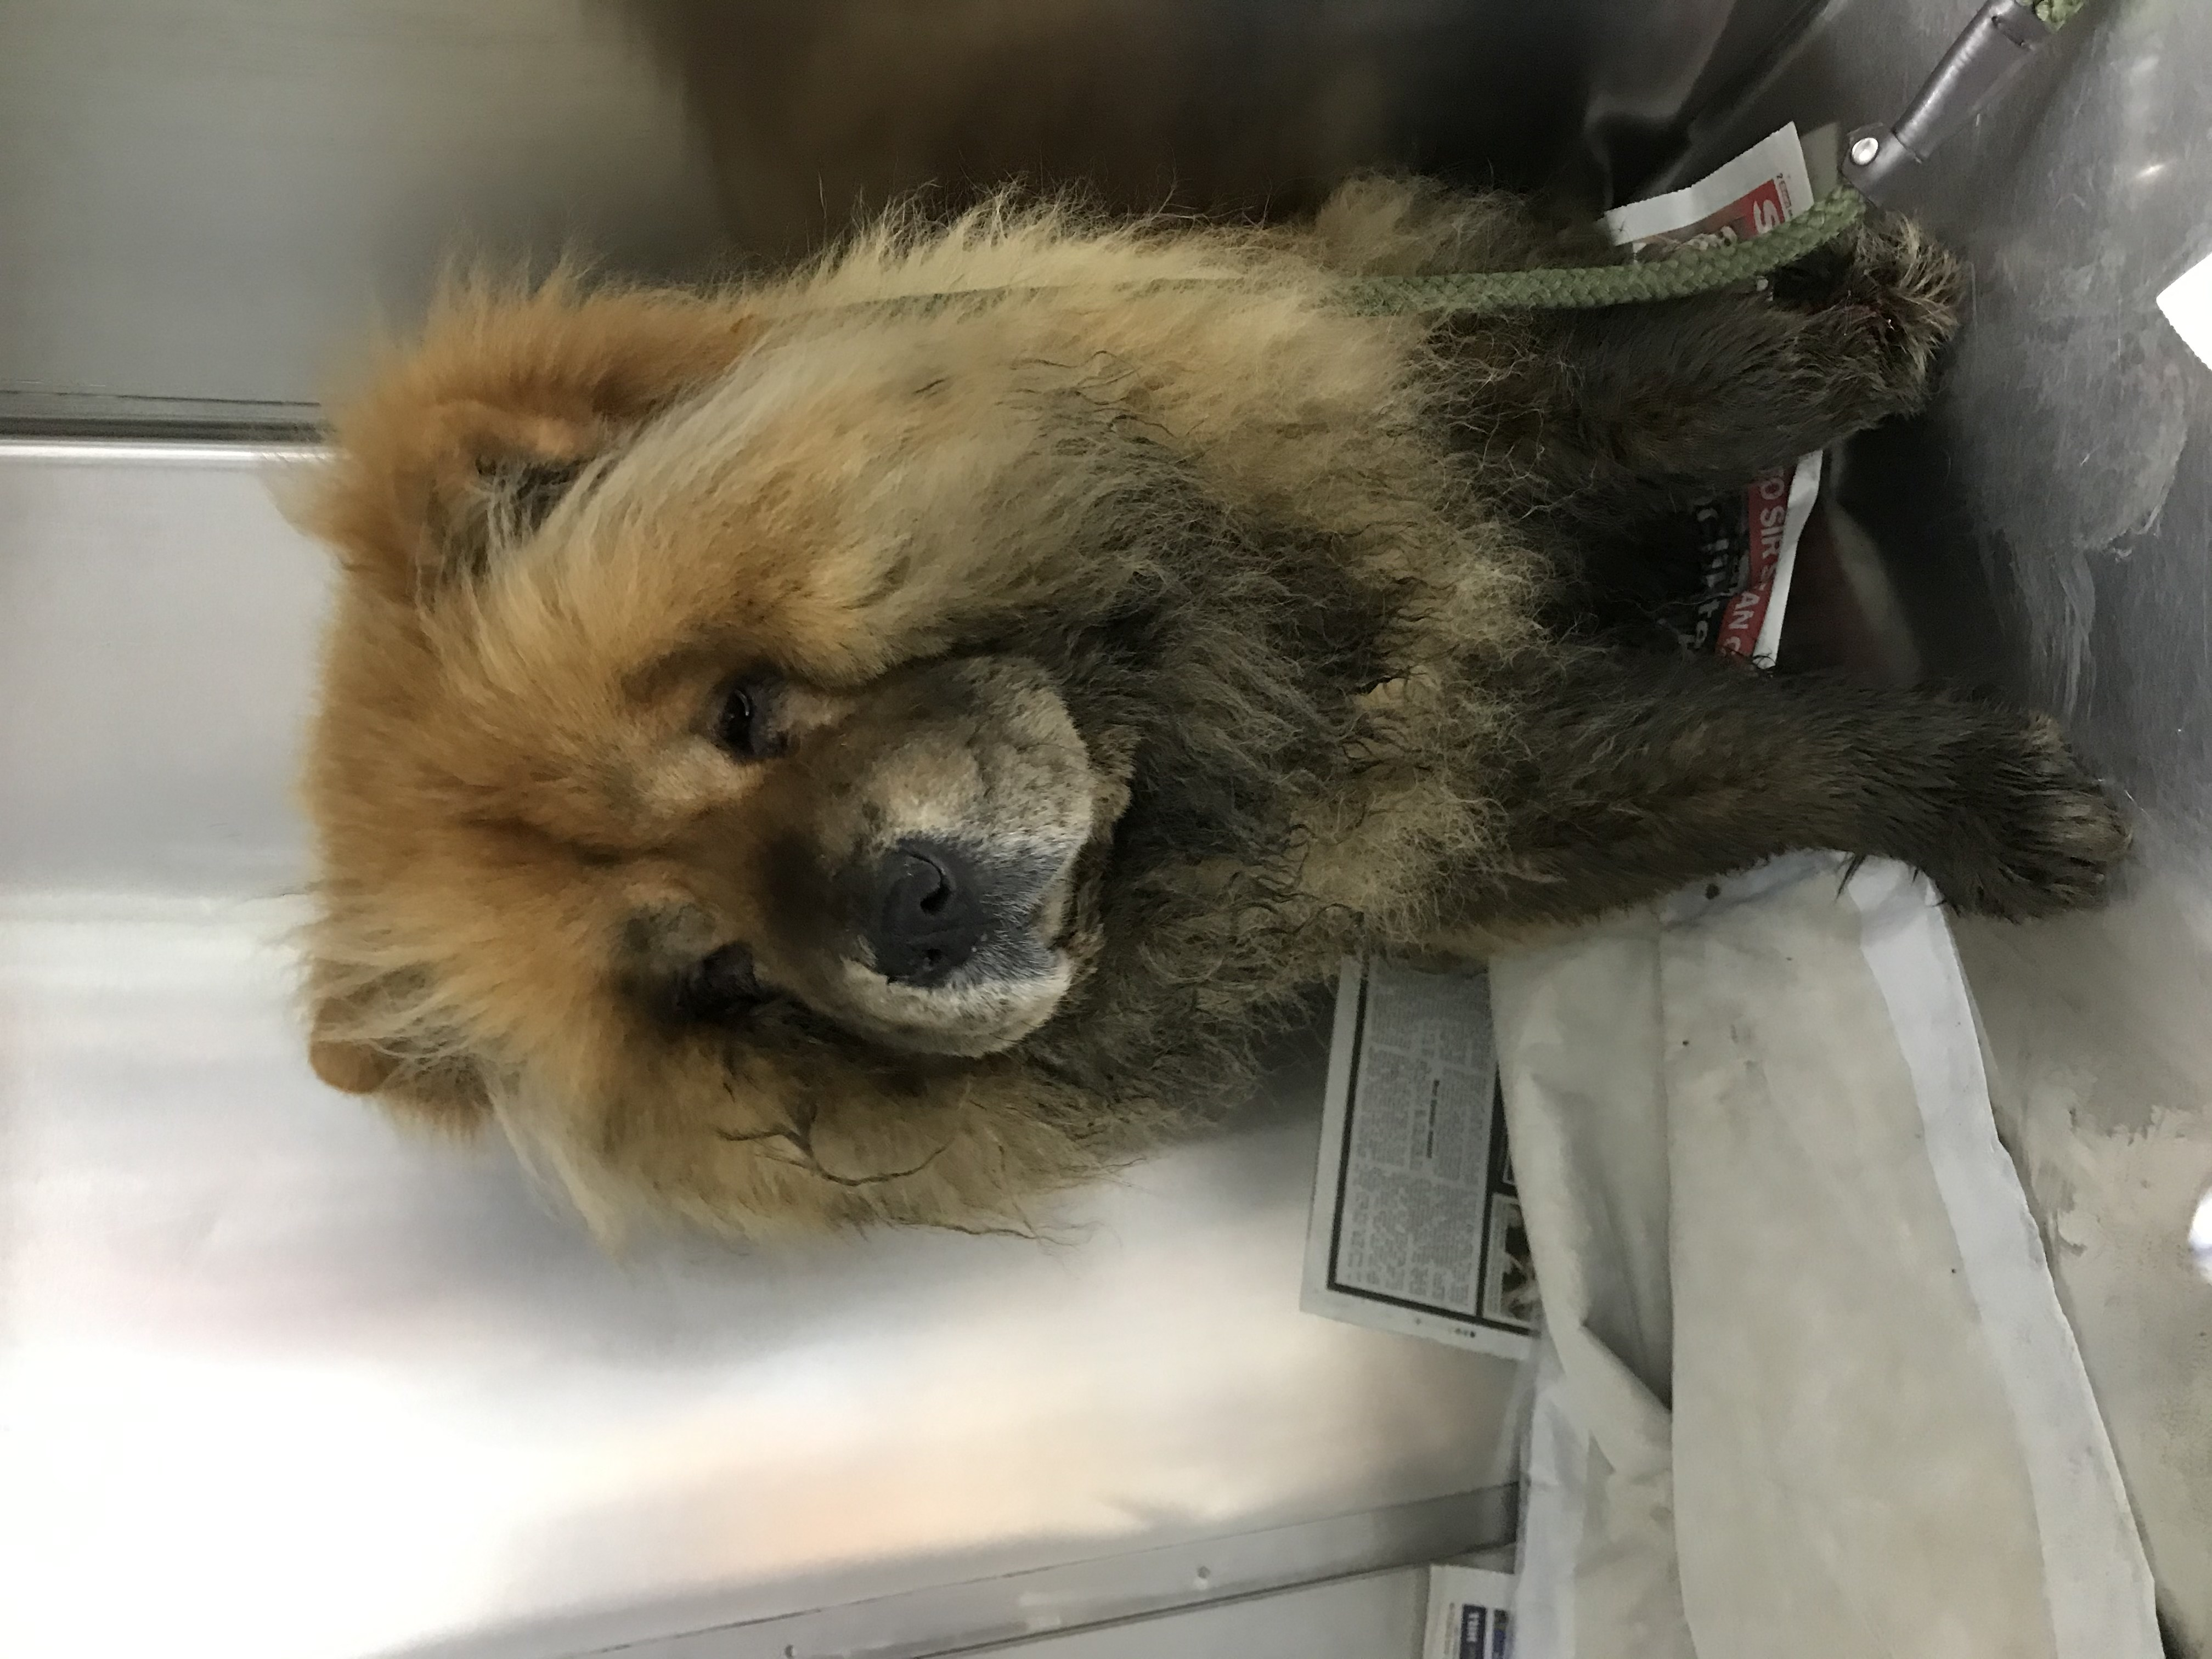 The RSPCA are now hoping to reunite the dog with its owners (RSPCA/PA)